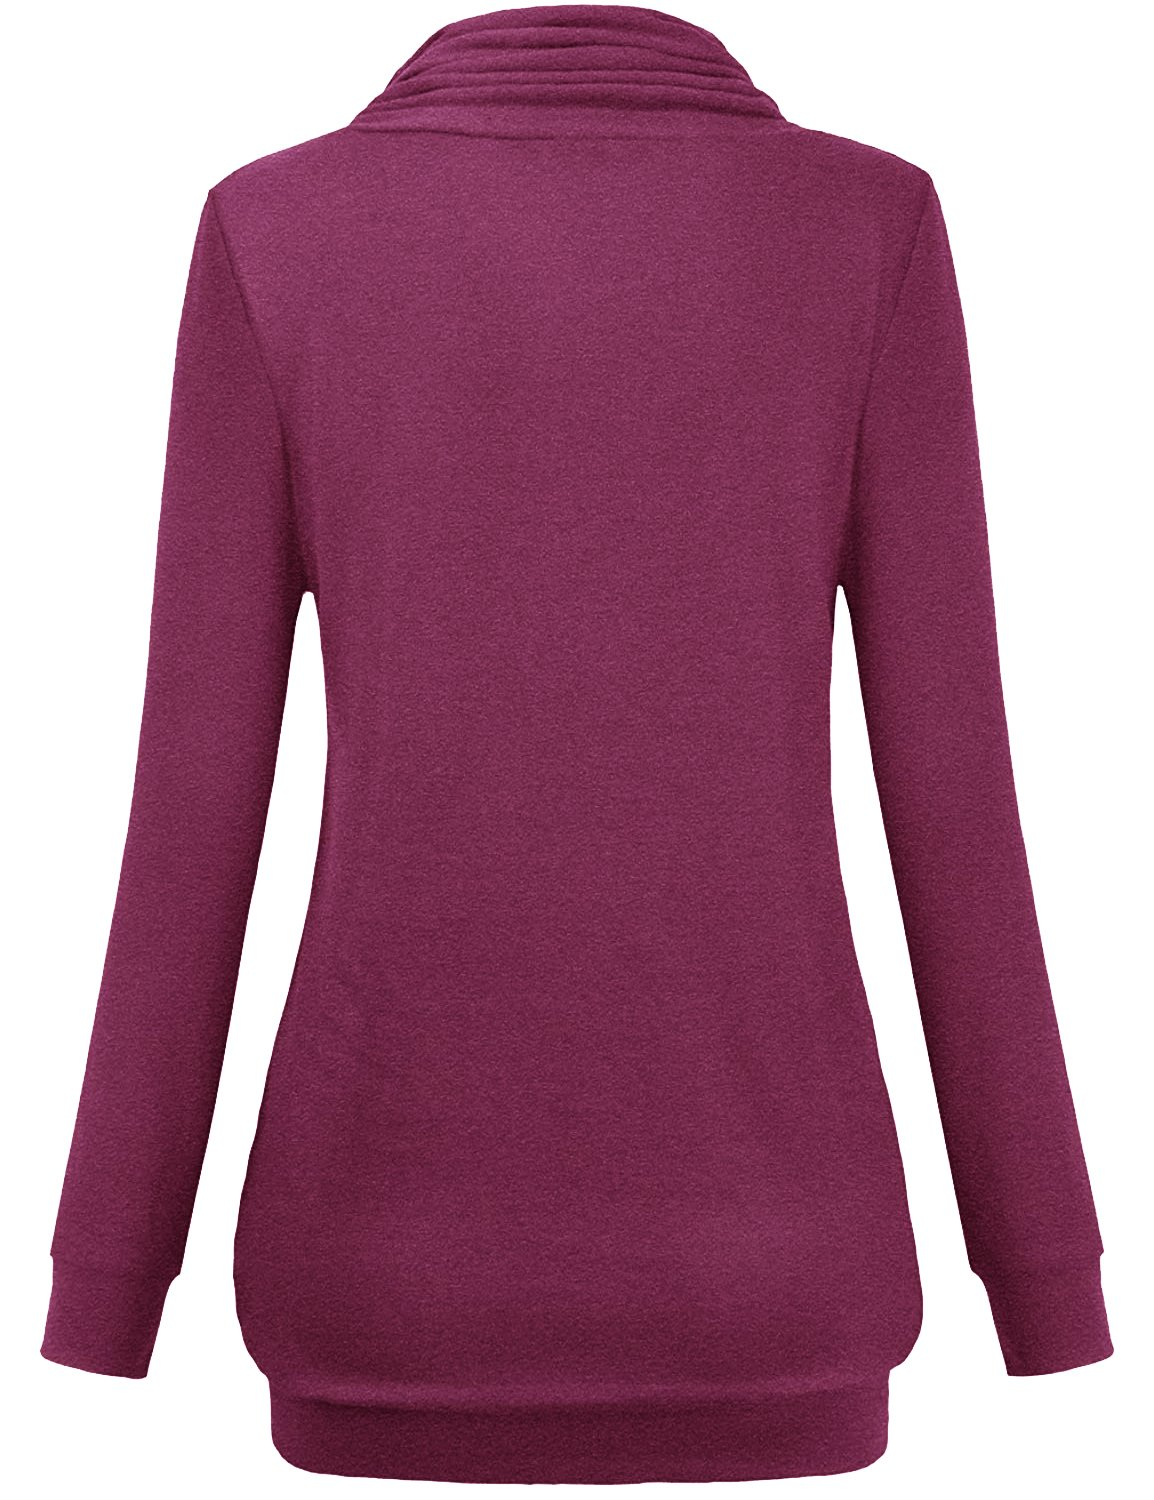 Hellmei Womens Nursing Tops, Ladies Petite Trendy Draped Prime Misses Shirt Long Sleeve Jersey Cotton Trapeze Cowl Neck Tunic A-Line Pleat Stretchy Business Casual Clothing Rose Red M by Hellmei (Image #3)